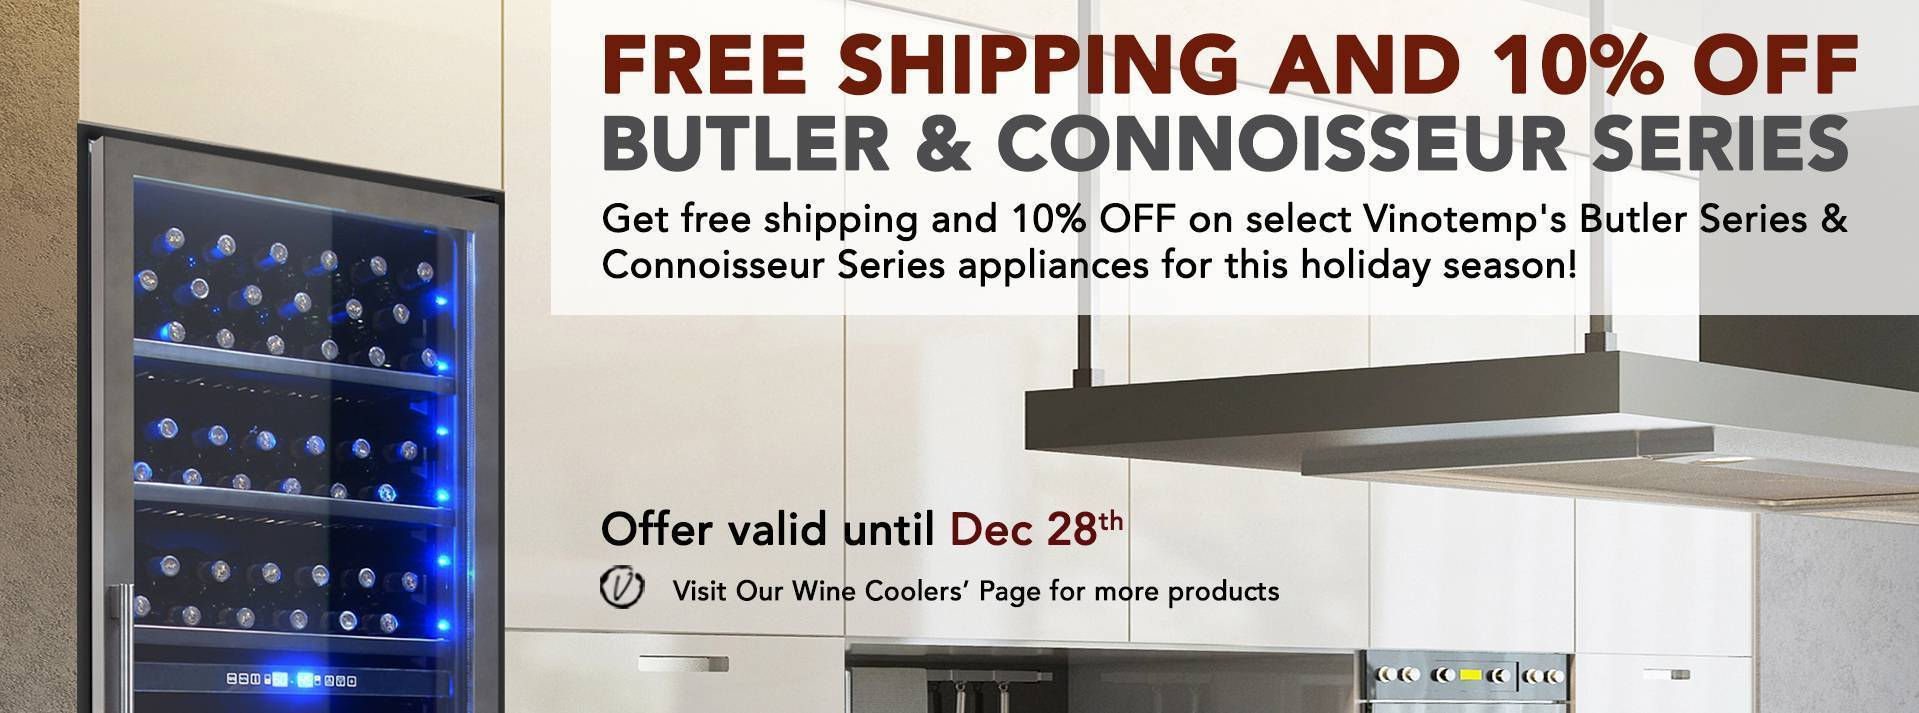 Free Shipping and 10% Off Butler and Connoisseur Series